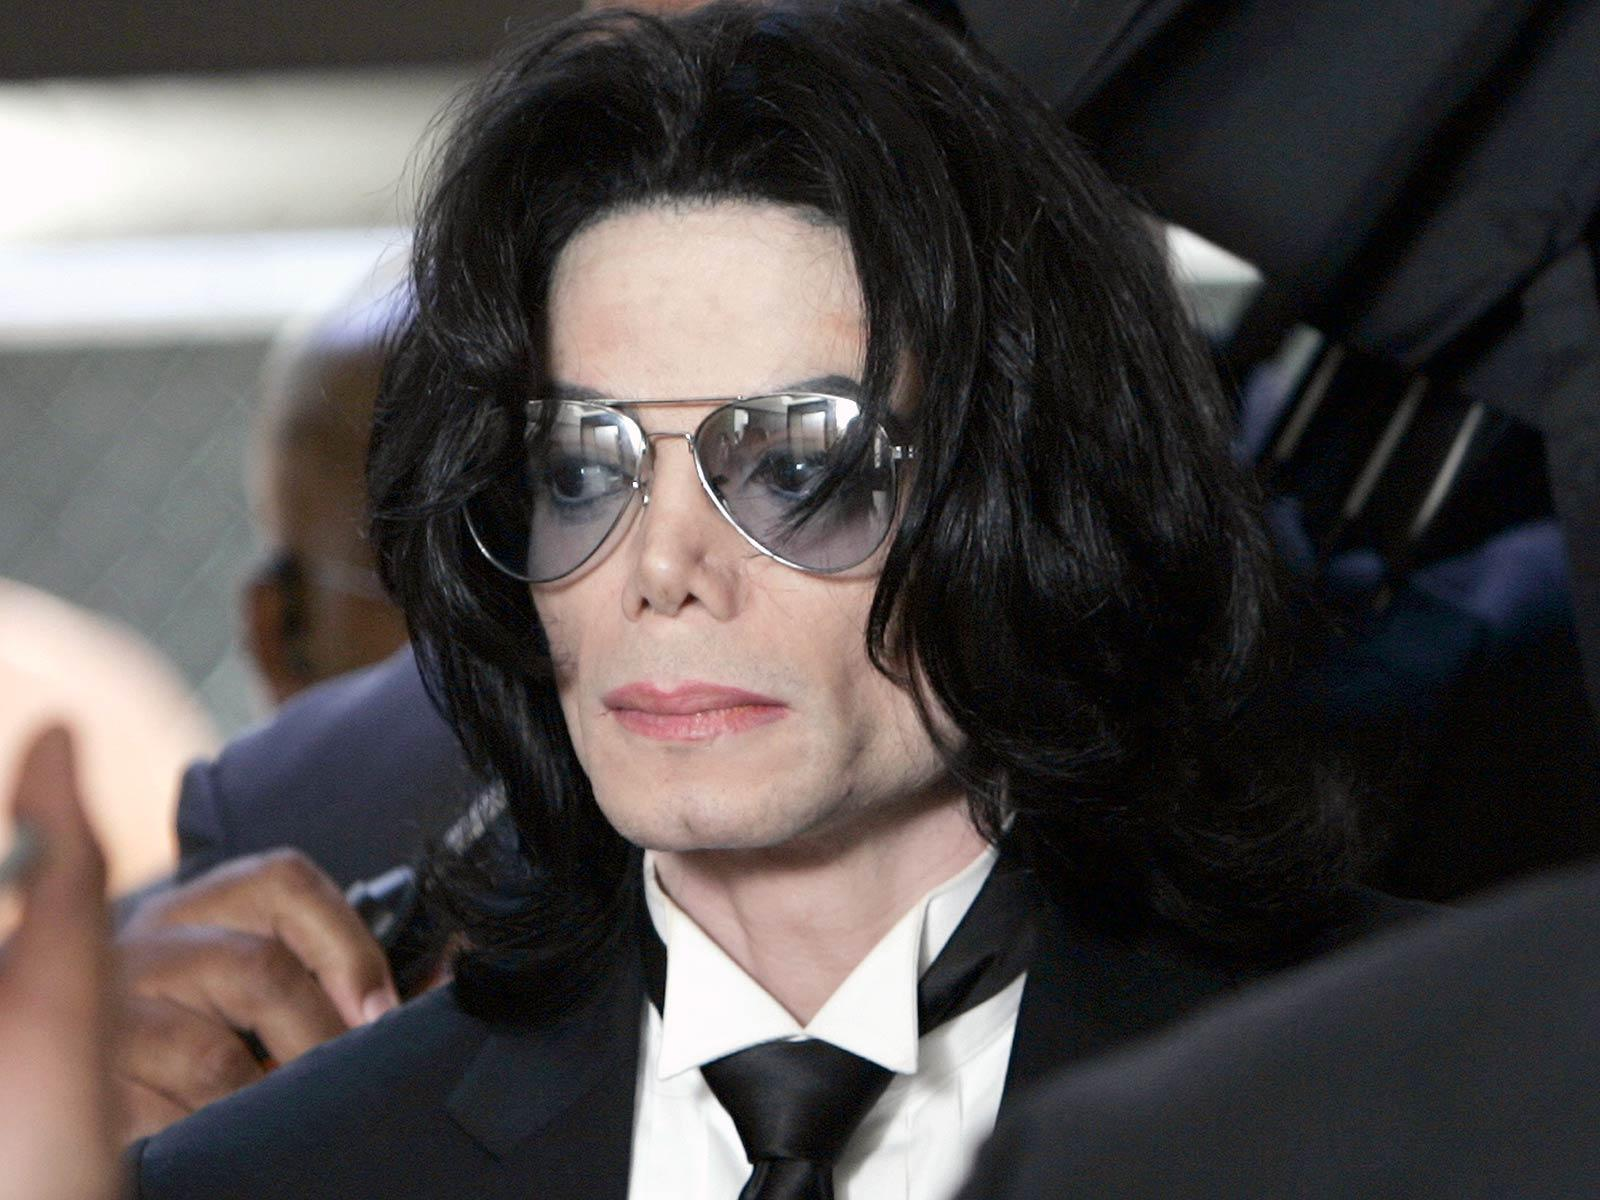 I'm writing a compare contrast essay about Micheal Jackson vs Elvis Presley...help?